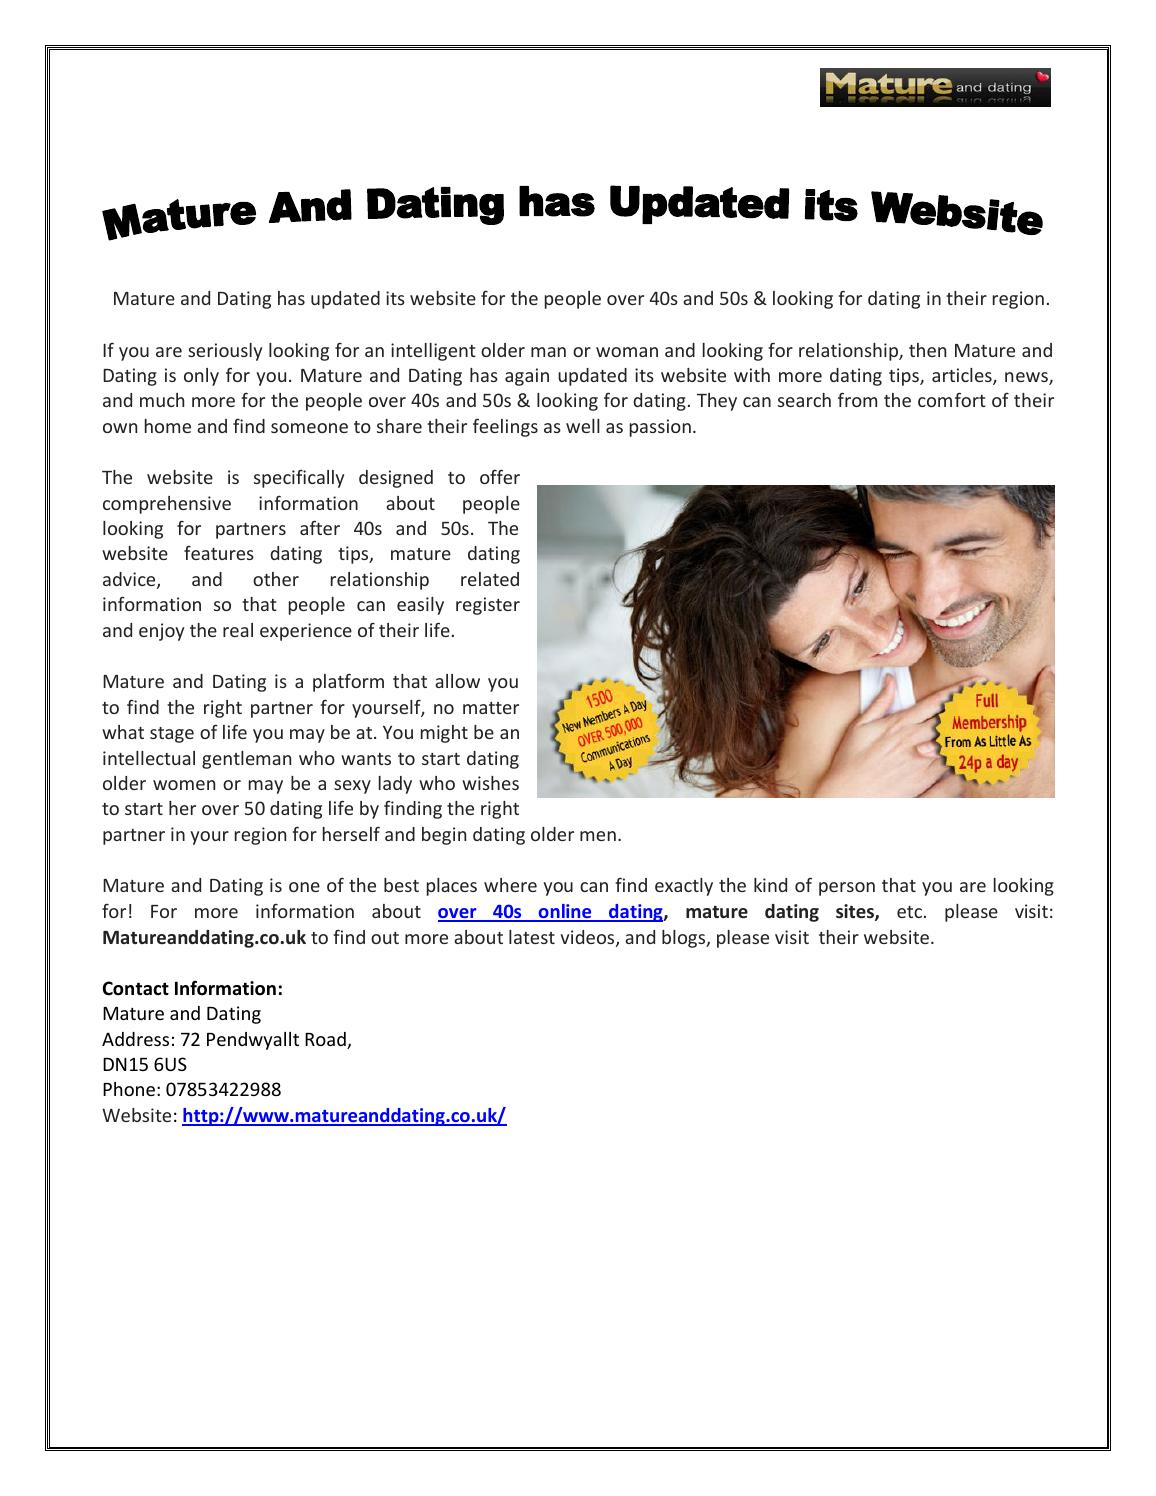 free online dating service mature content The object of the date sites free online is to form an online community and to opportunity to meet people with another to start, join here in mature and meetings, an online dating service that includes a small amount of class.